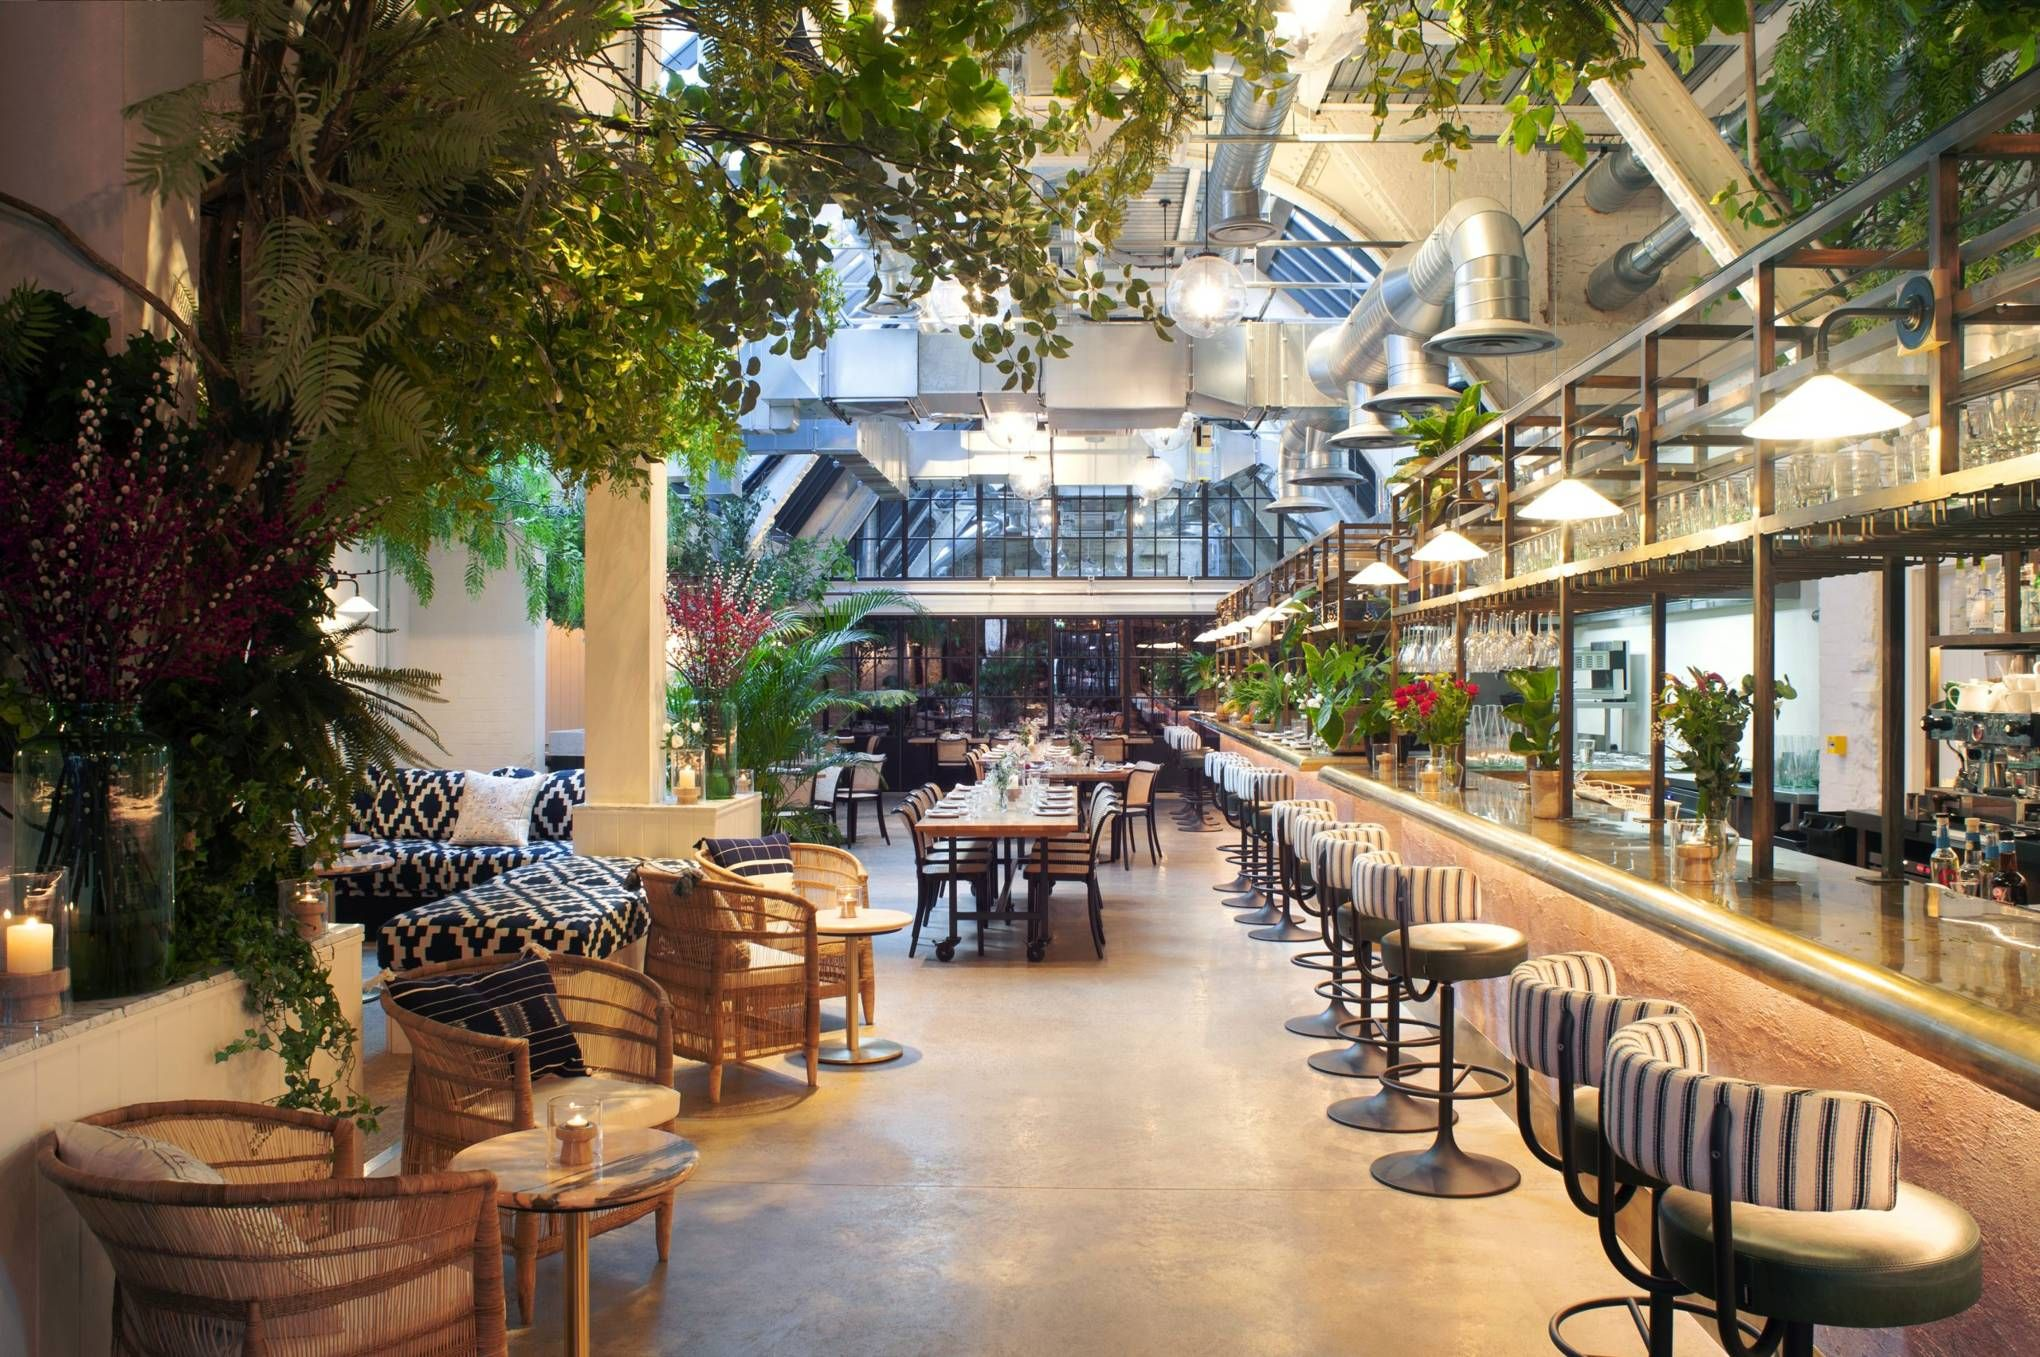 Restaurant of the Week Wild by Tart, the latest venture